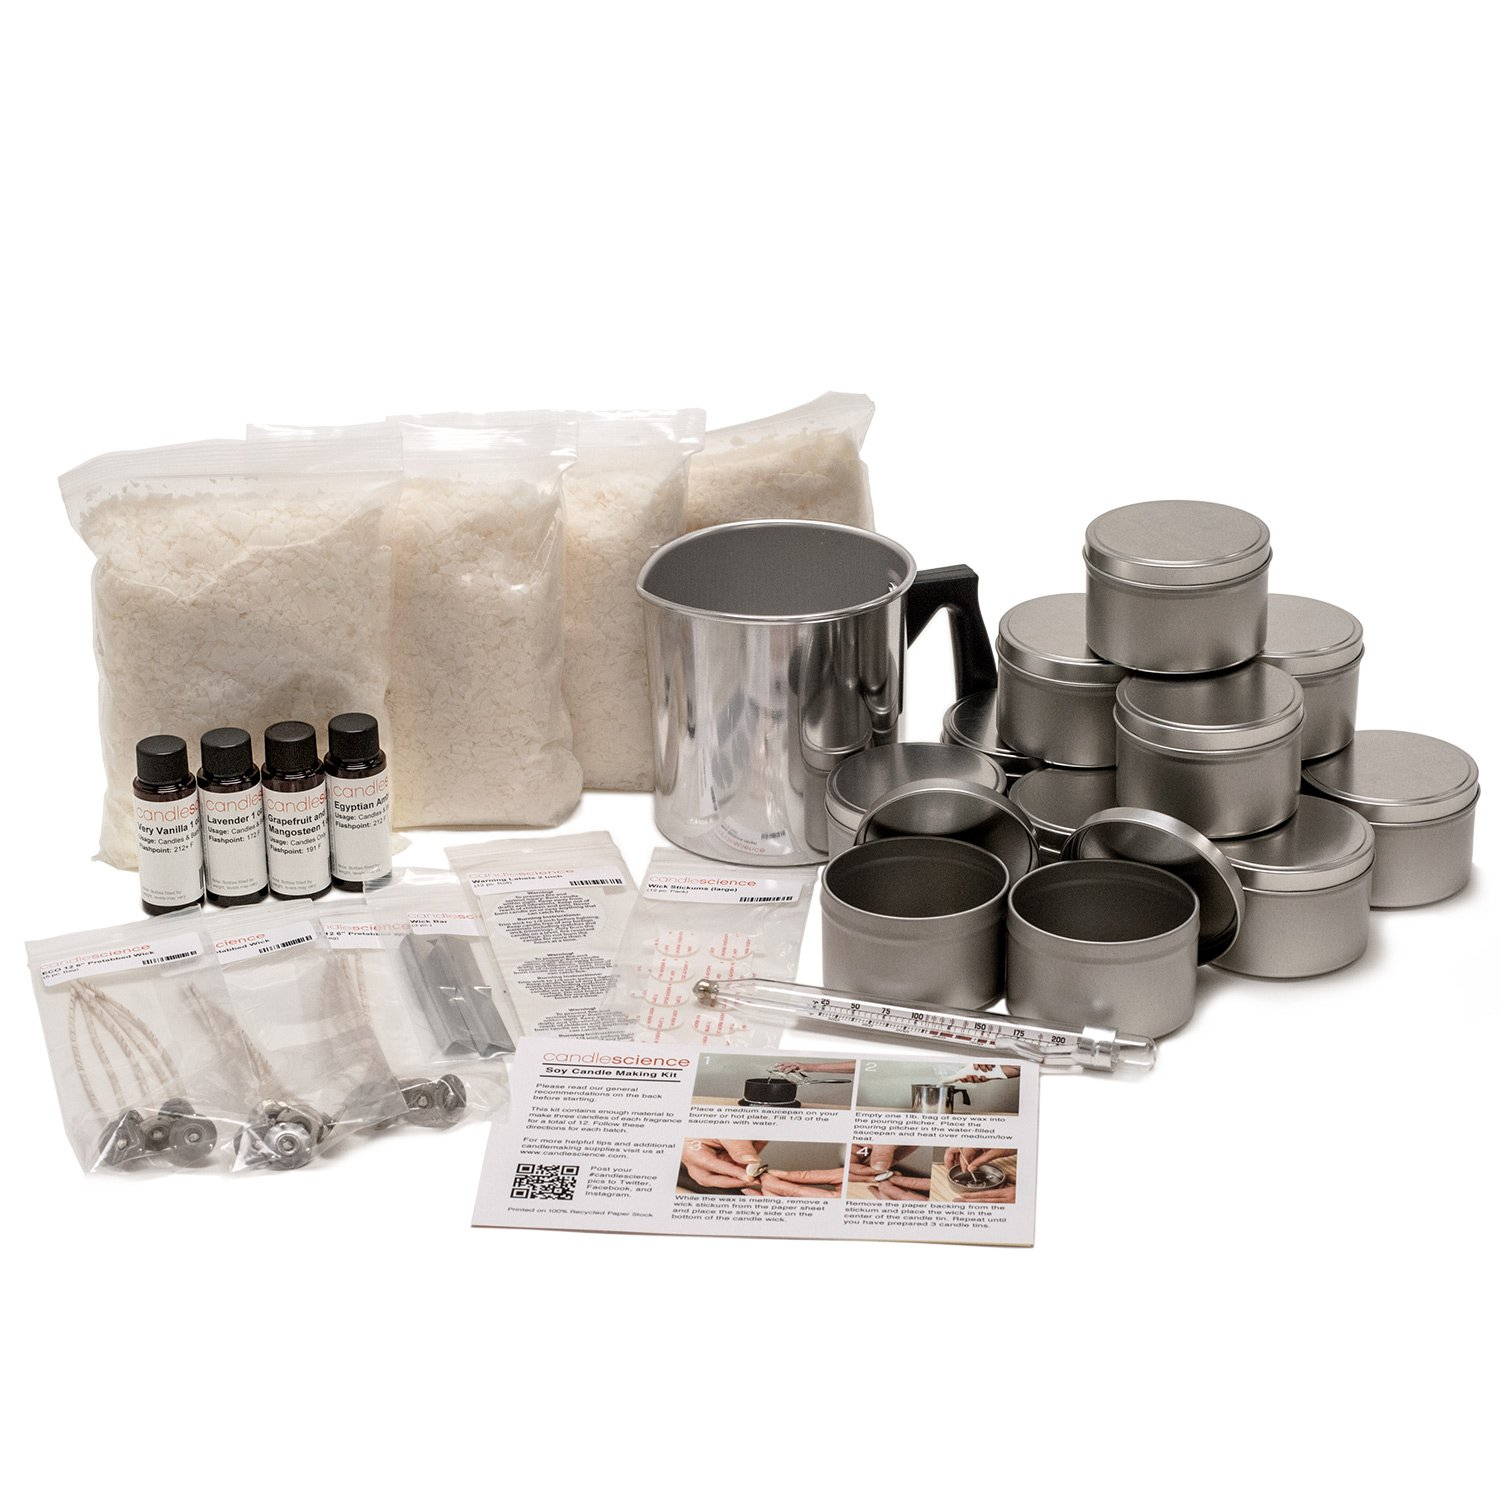 CandleScience Soy Candle Making Starter Kit (Up to 12 Candles) – DIY Kit Contains Soy Wax Pot Wicks and Thermometer – No Experience Necessary